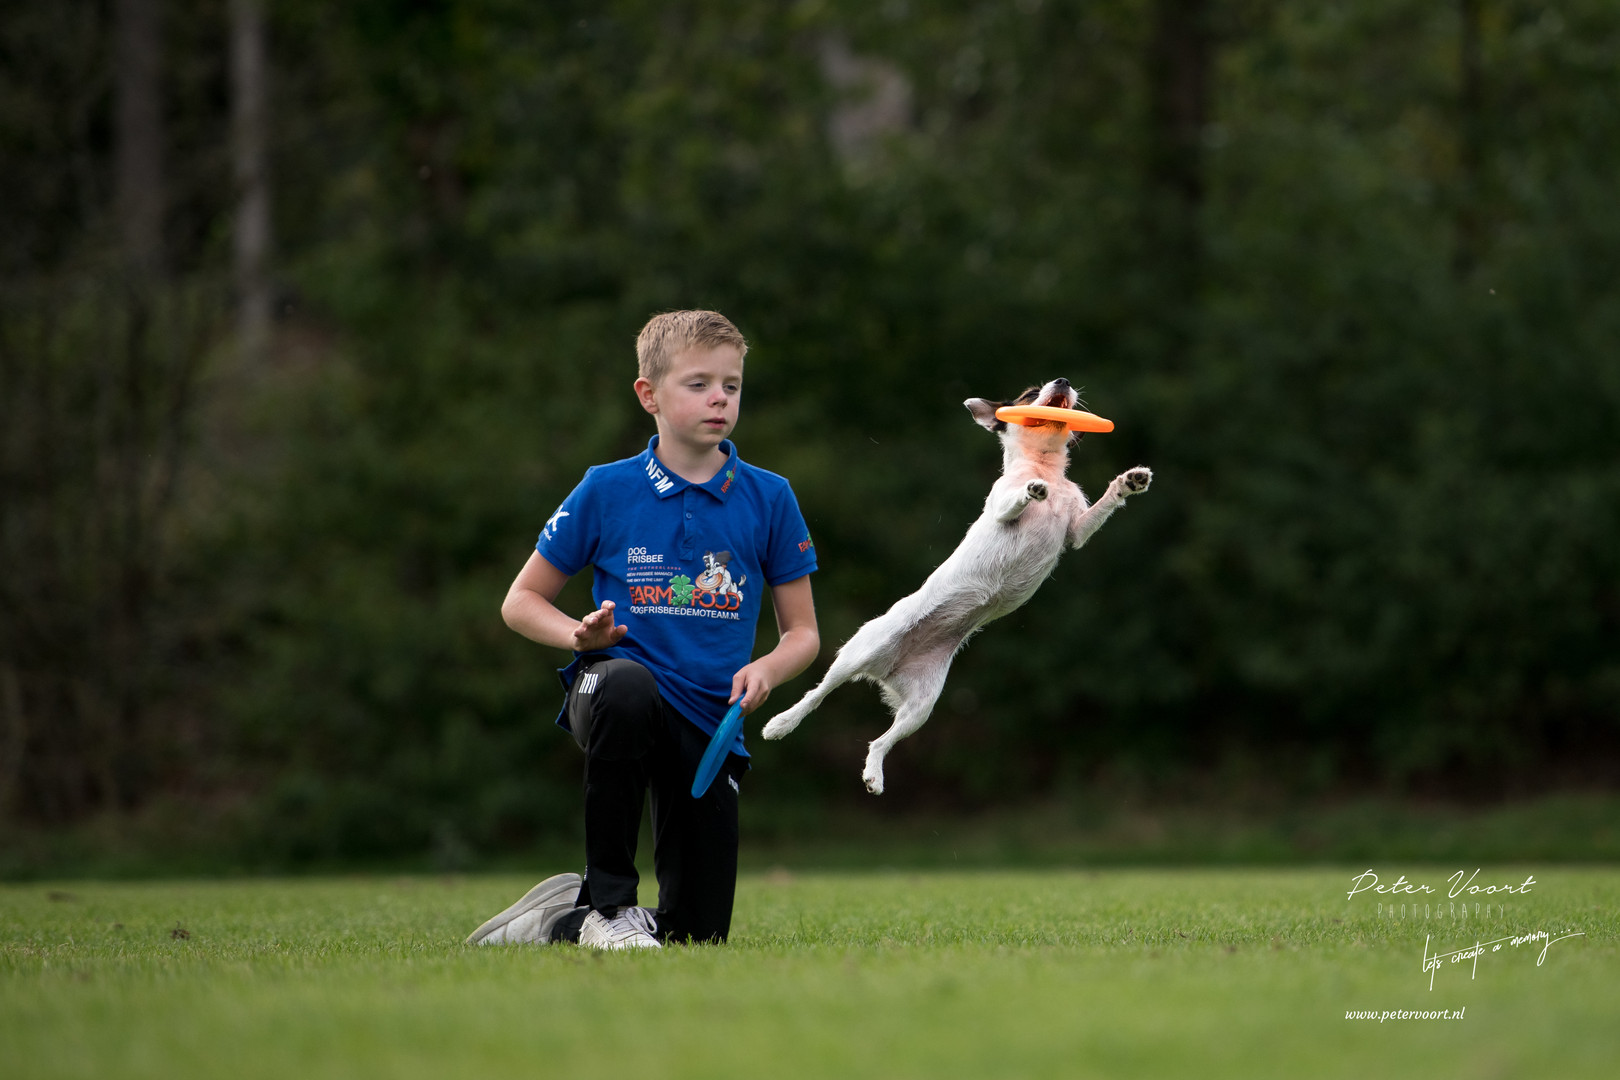 nfm dogfrisbee